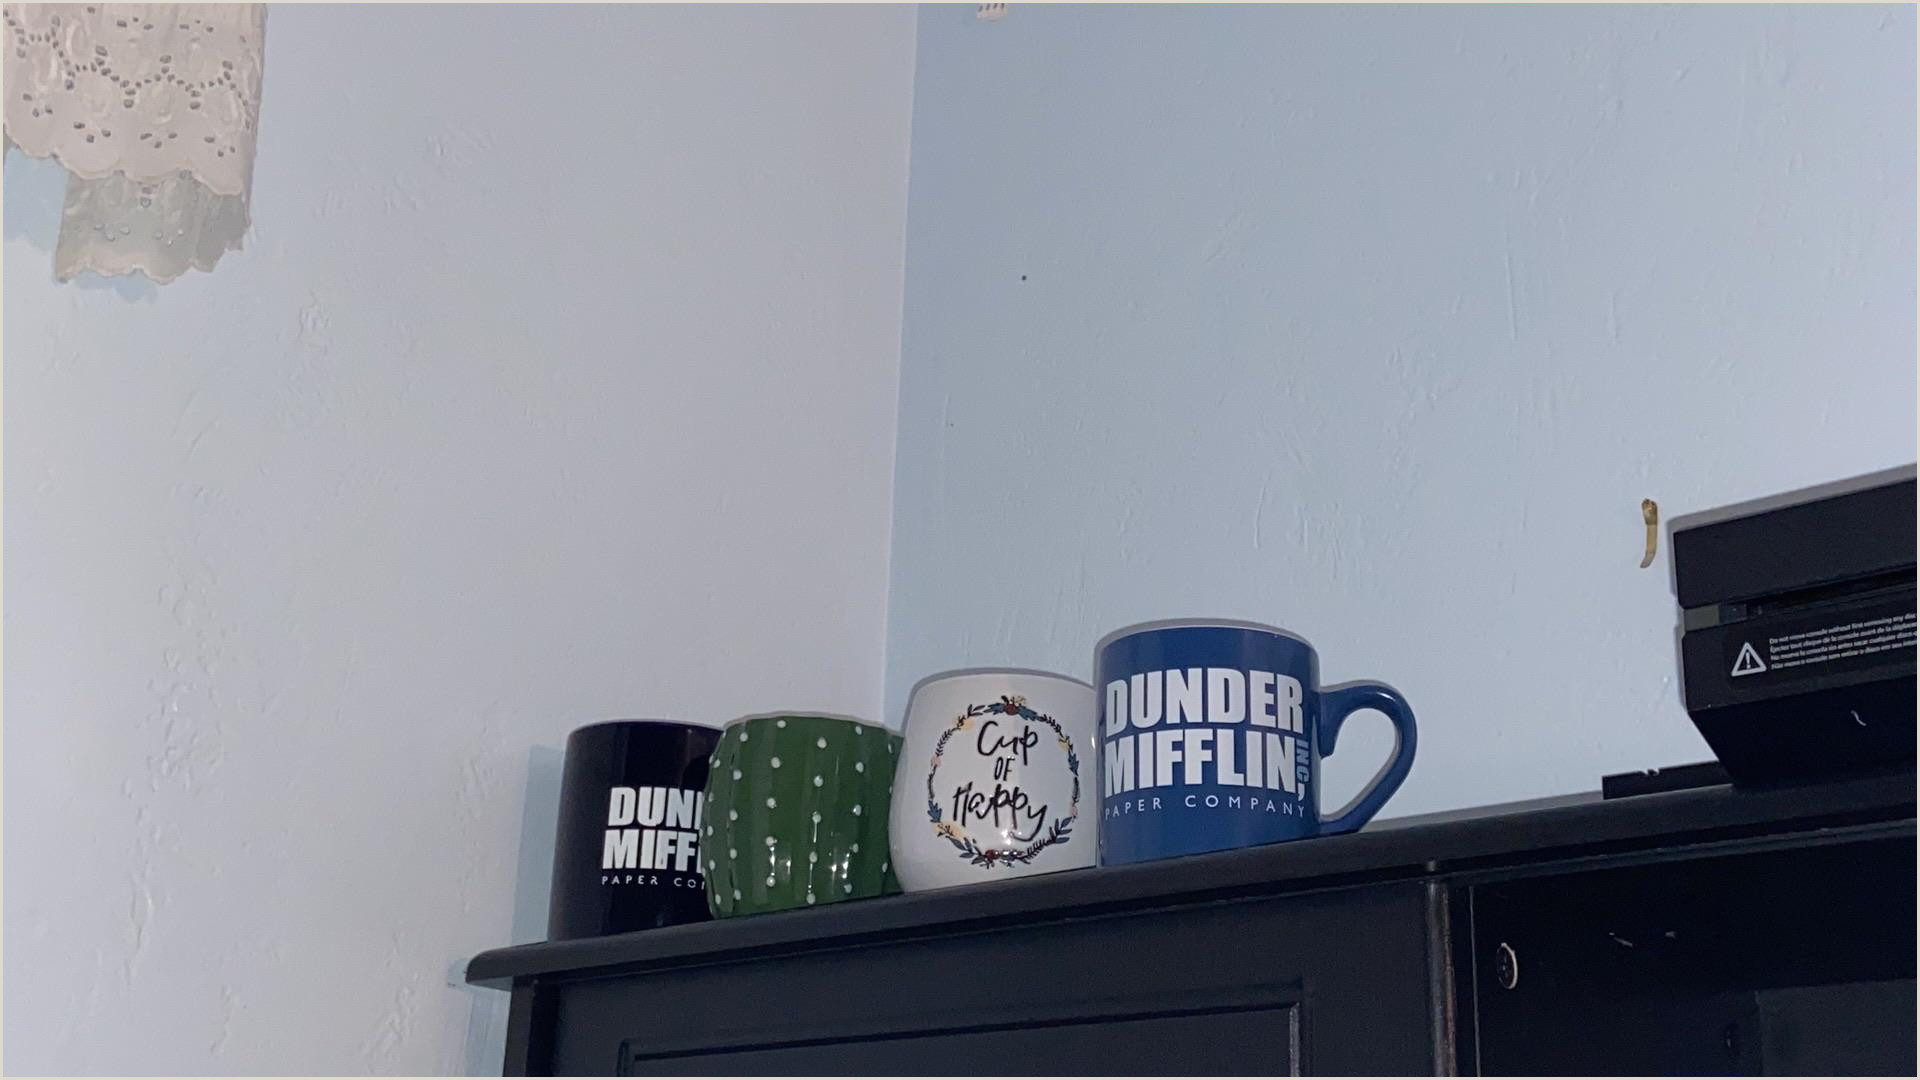 Business Acrds Started Collecting Mugs Both The Dunder Mufflin And Cactus